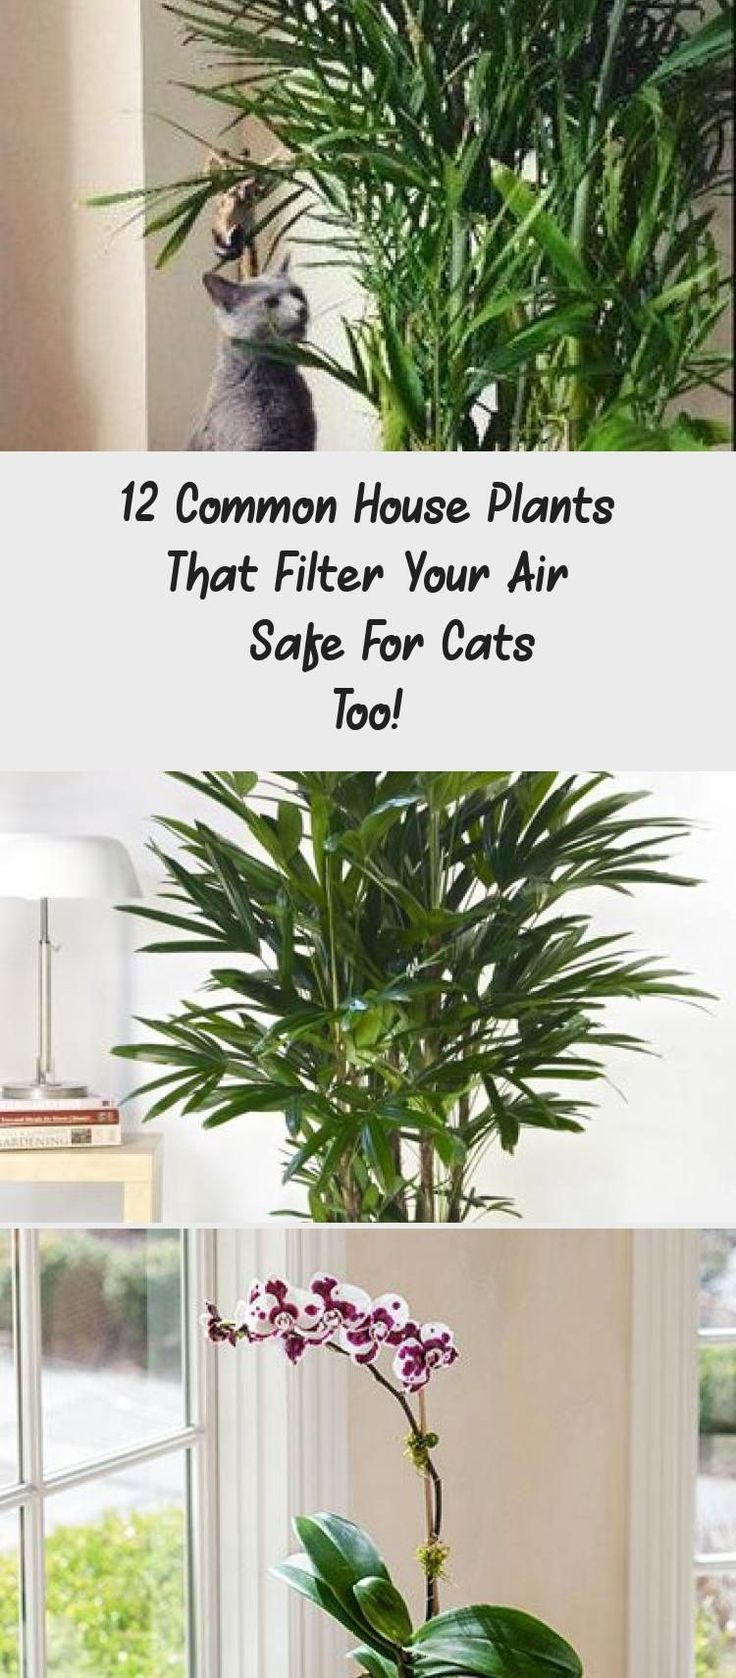 12 Common House Plants That Filter Your Air Safe For